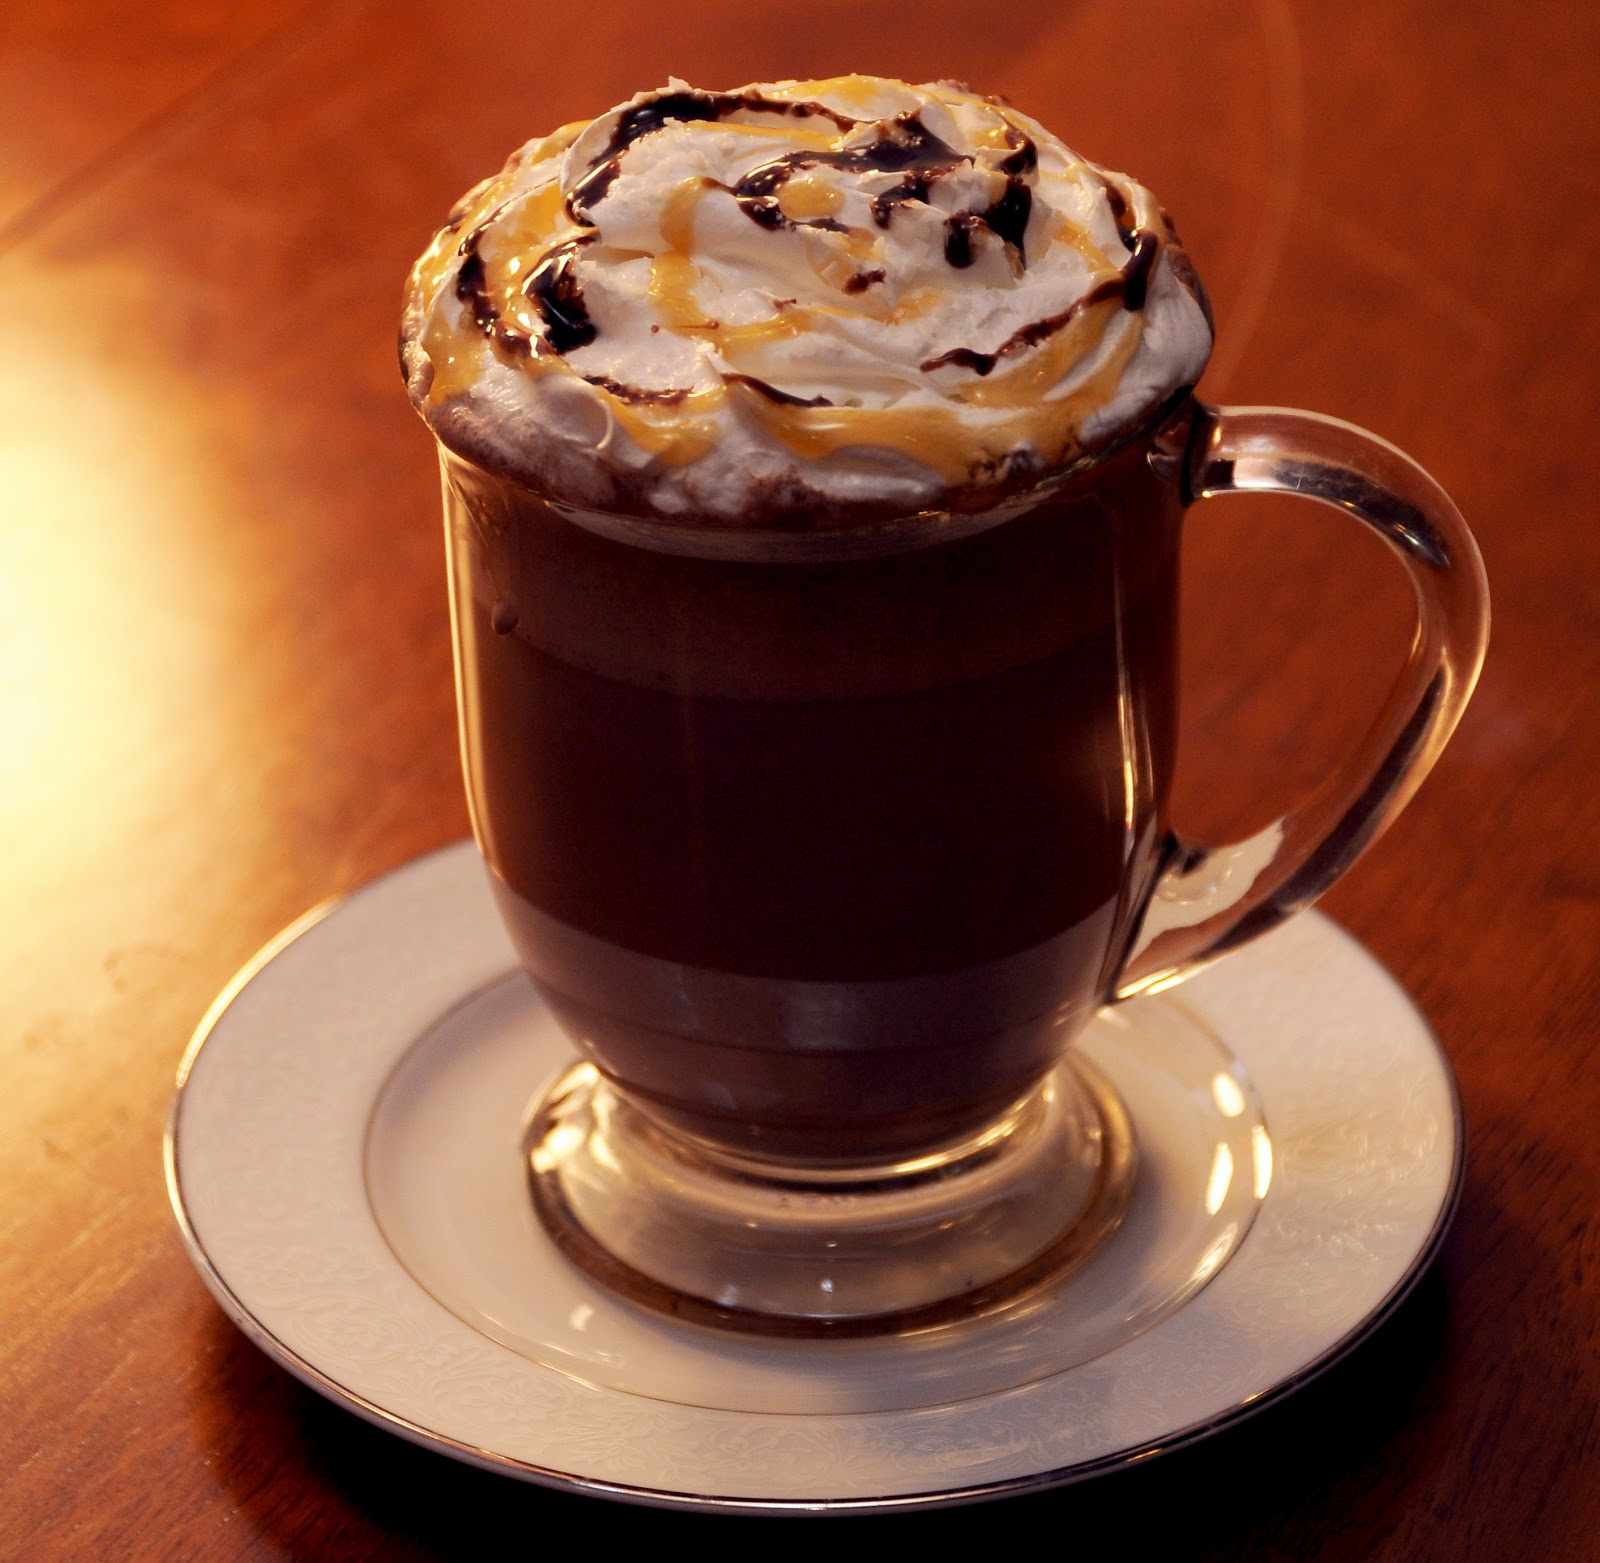 Caramel Macchiato What Is Your Favorite Type Of Coffee? - Women Daily Magazine